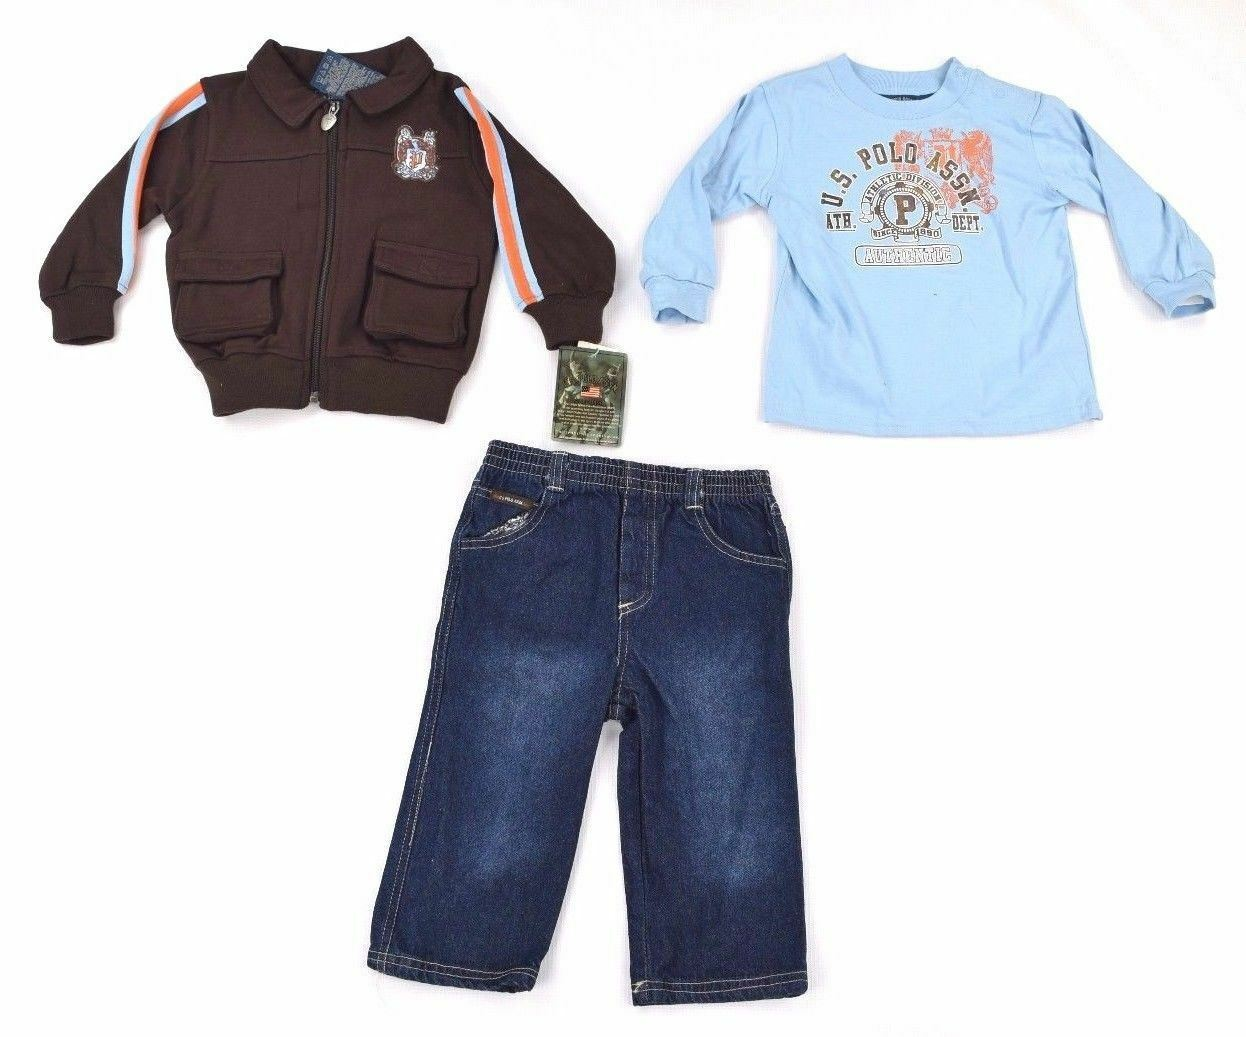 U.S. Polo Boys 3 Piece Set Jacket Polo Shirt Jeans 24M Blue/Coffee Bean